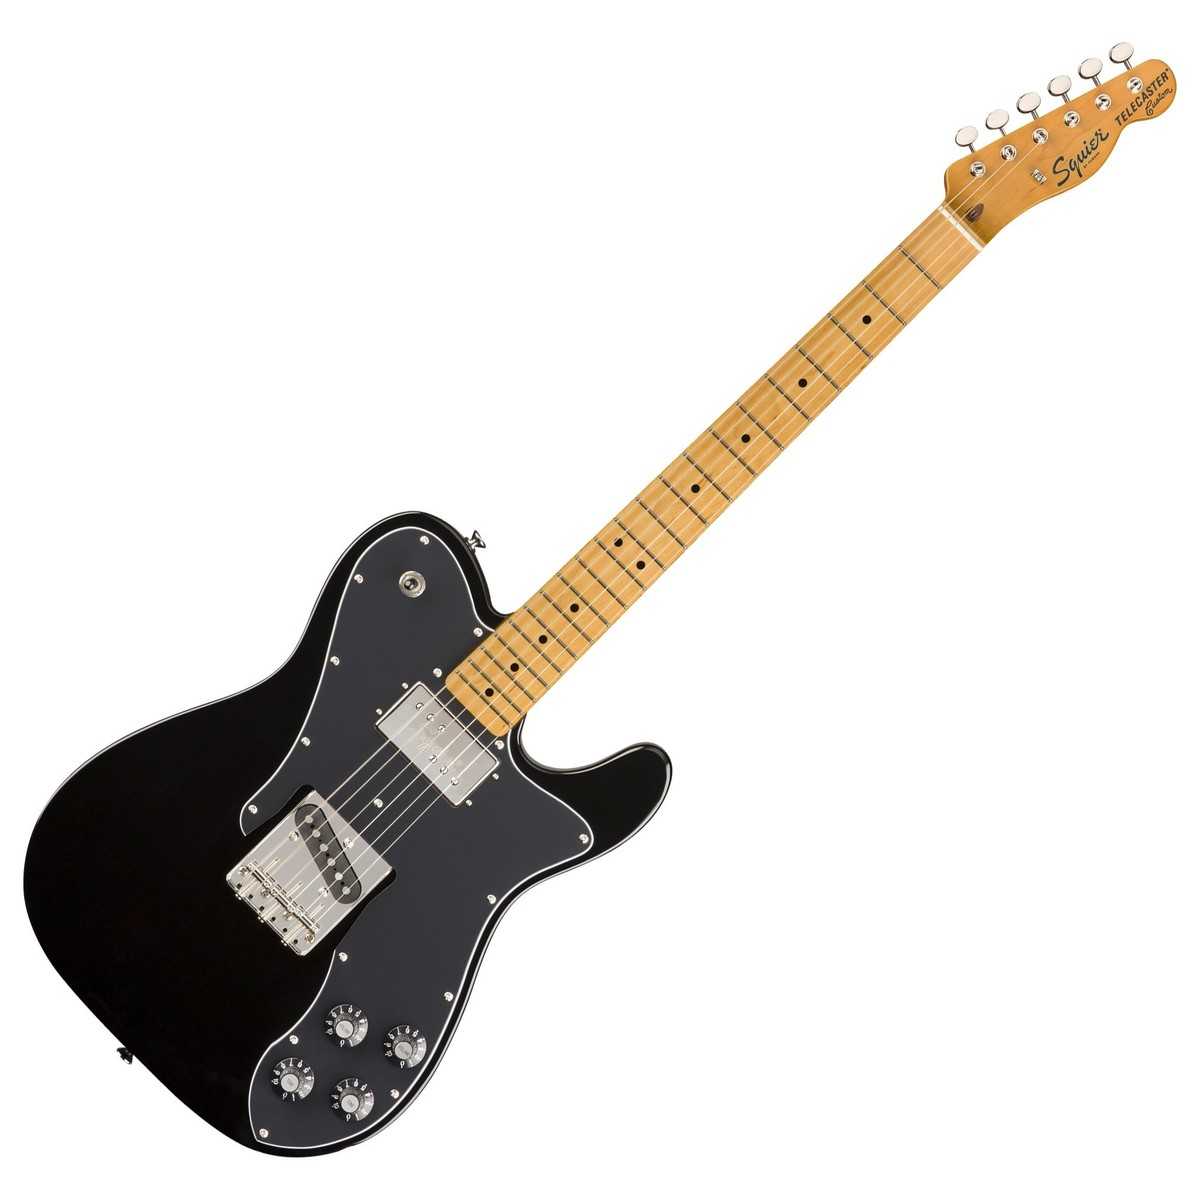 squier classic vibe 70s telecaster custom mn black at gear4music. Black Bedroom Furniture Sets. Home Design Ideas